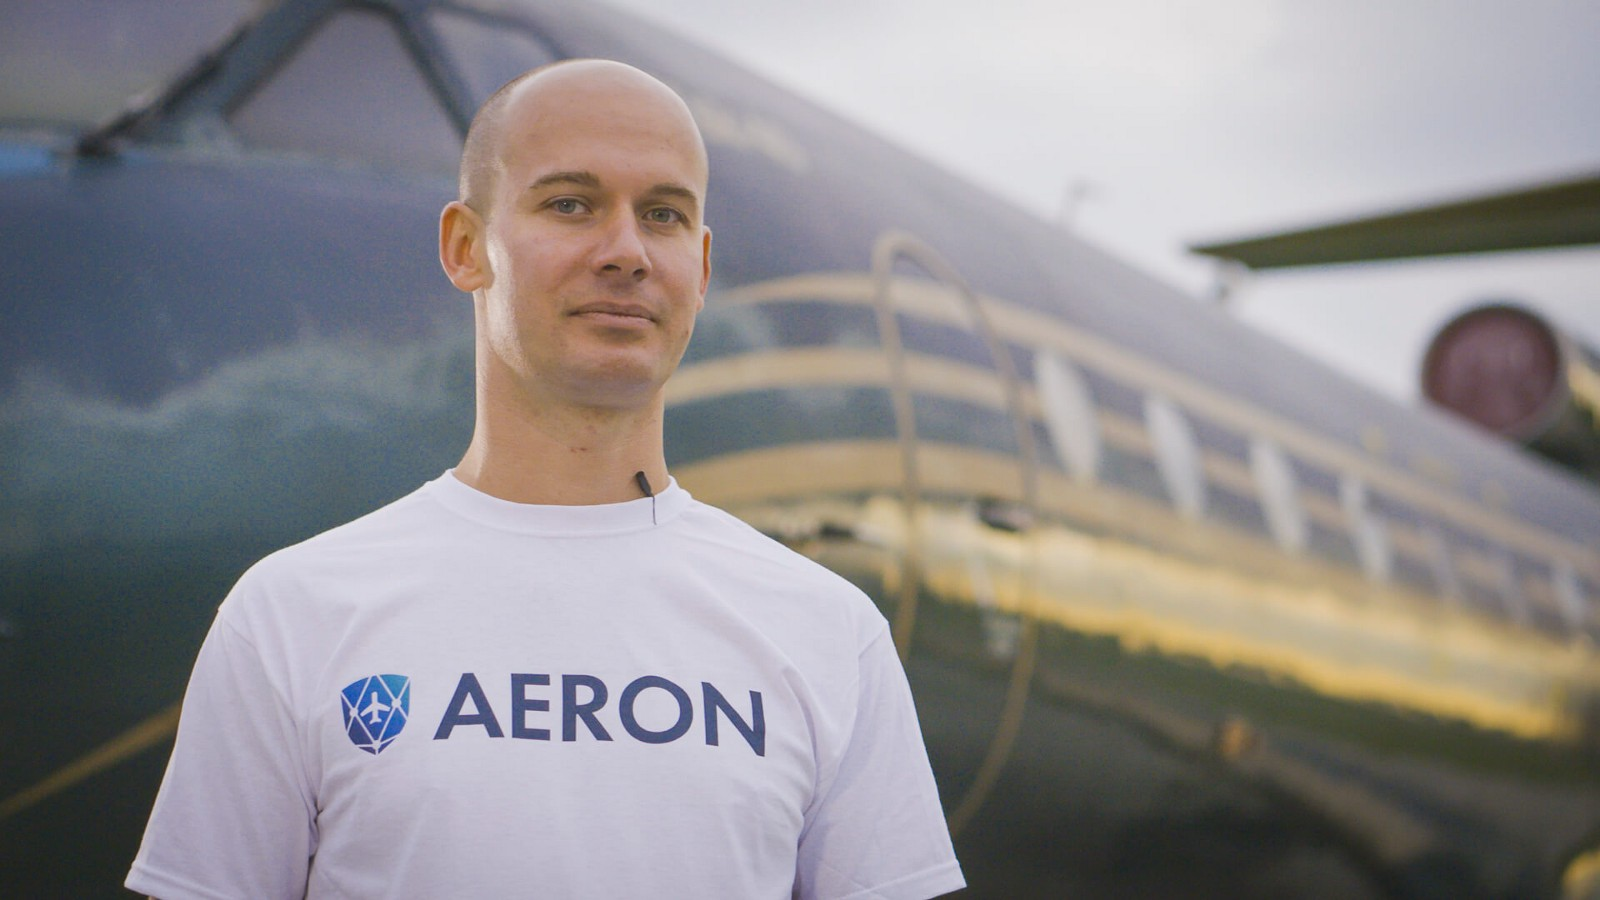 Trading - AERON — BLOCKCHAIN SOLUTION FOR SAFETY OFFER ...